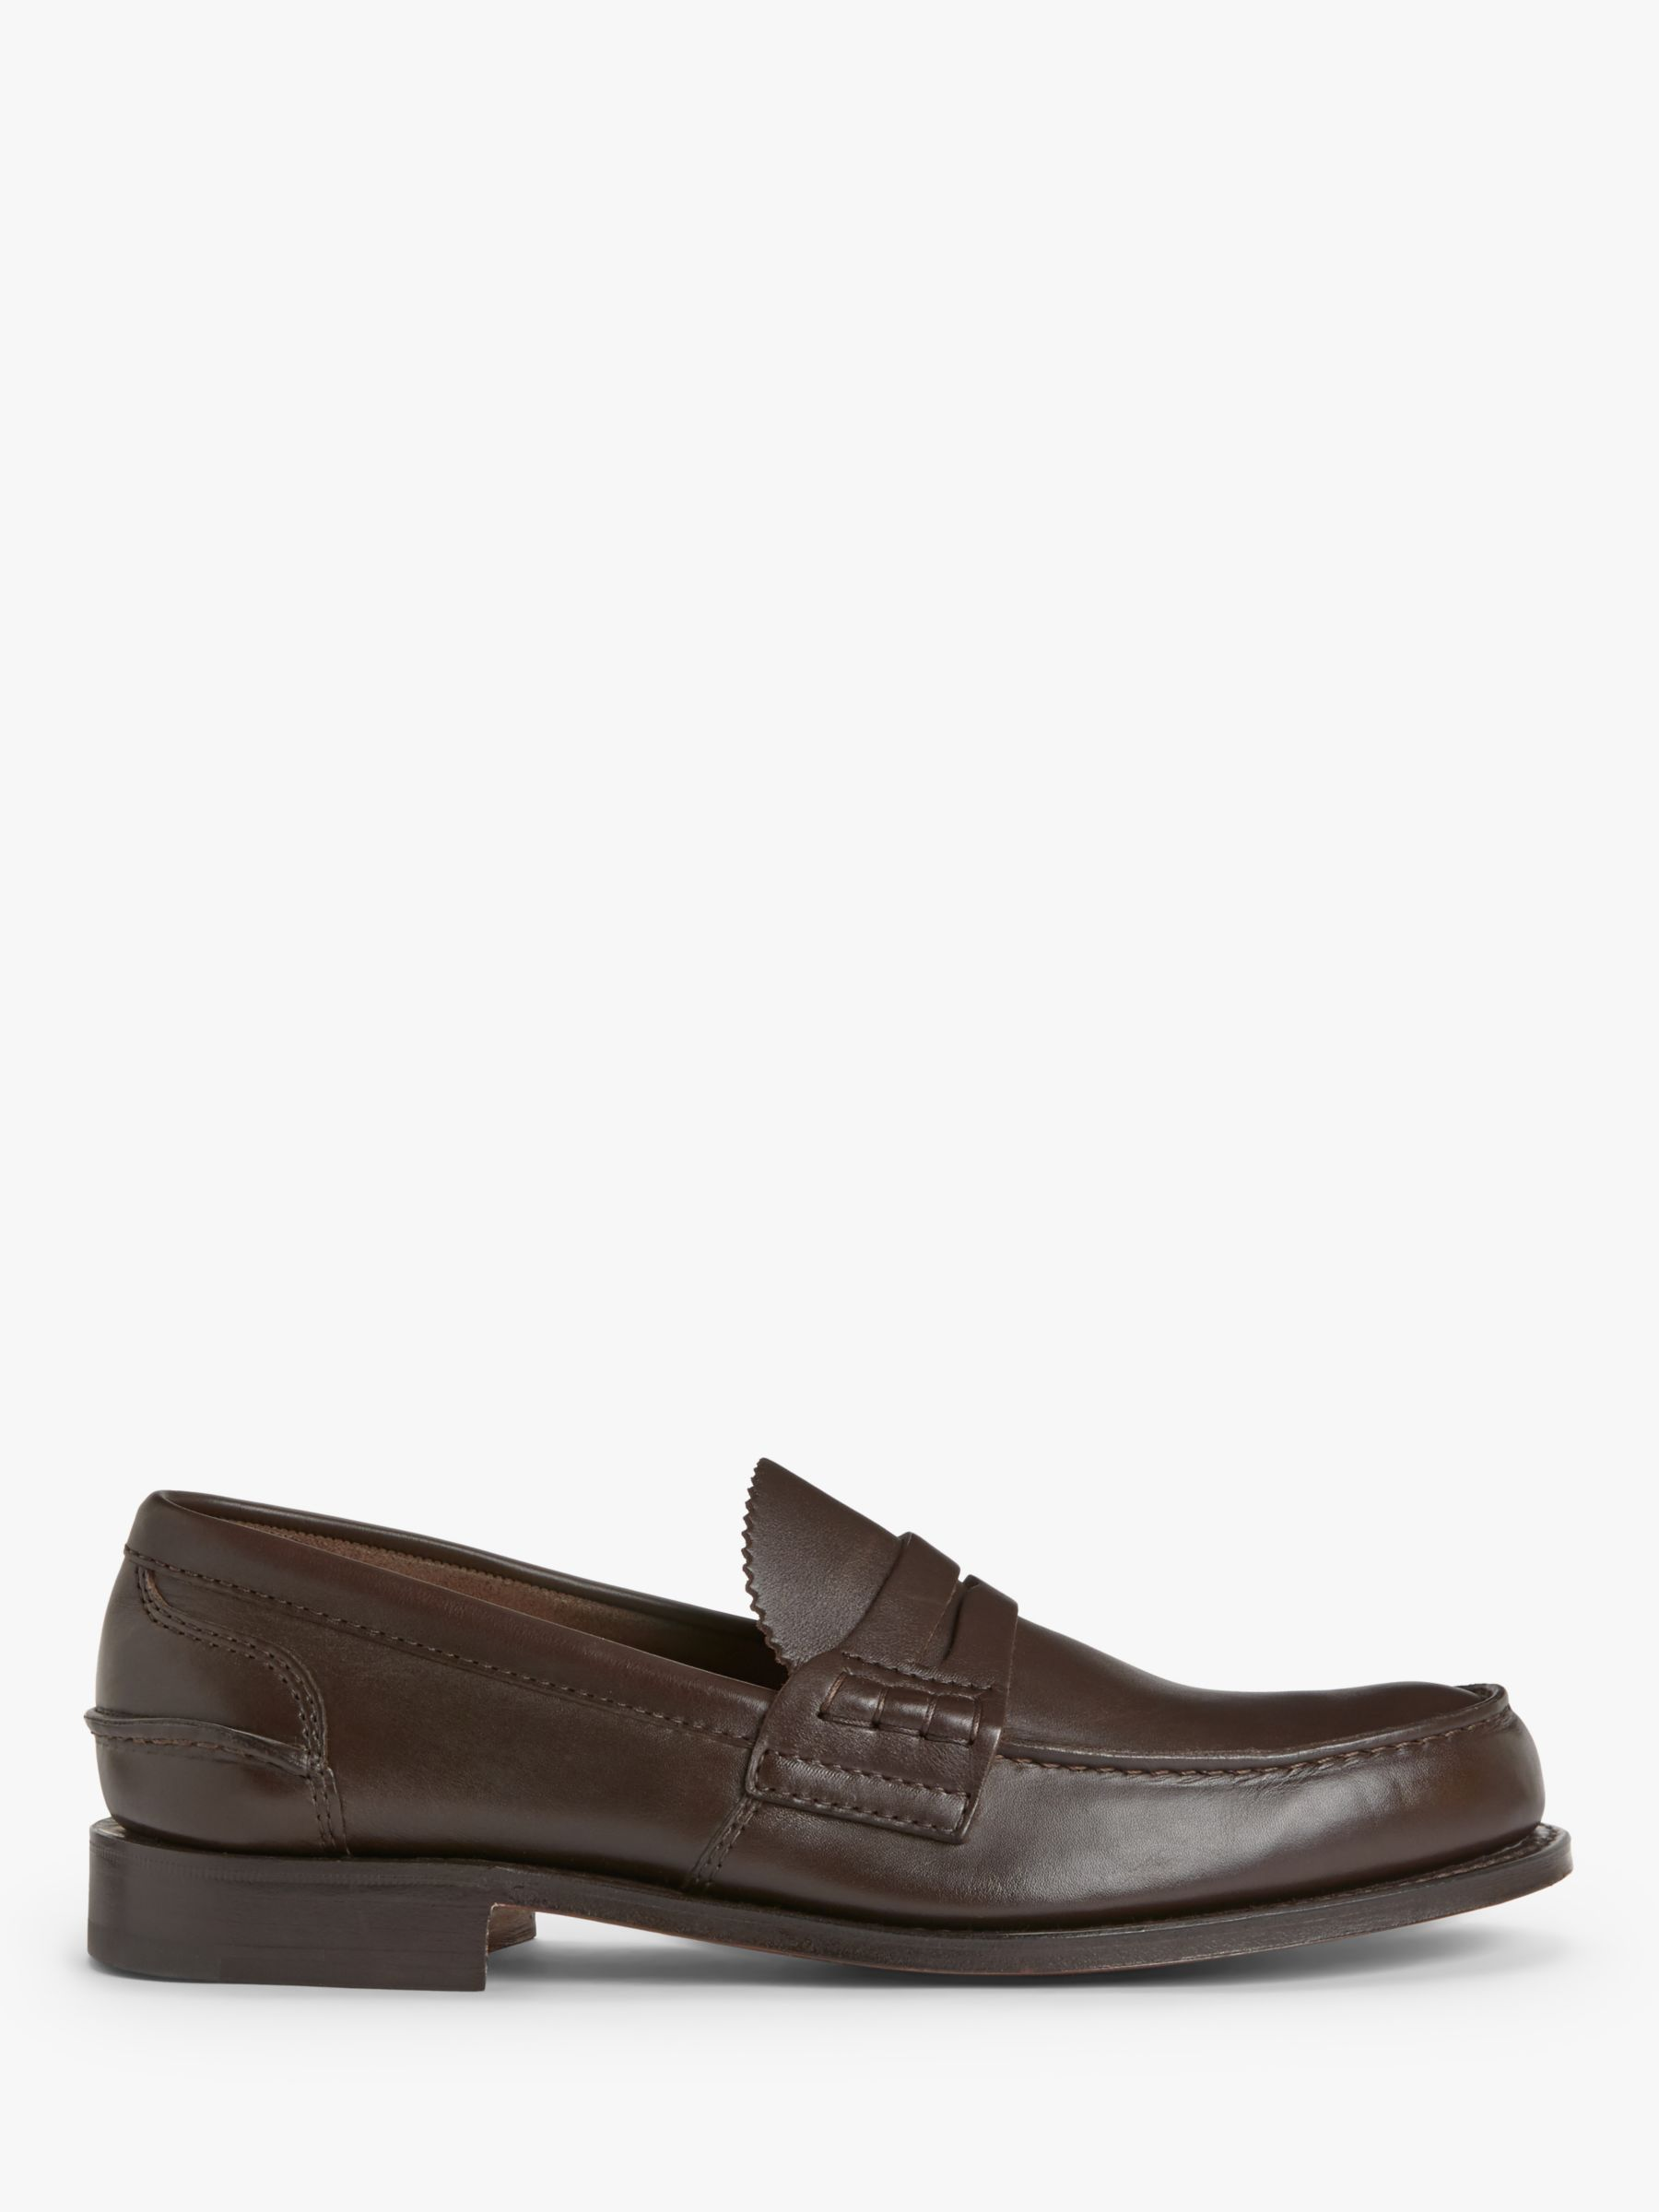 Church's Church's Pembrey Leather Penny Loafers, Brown